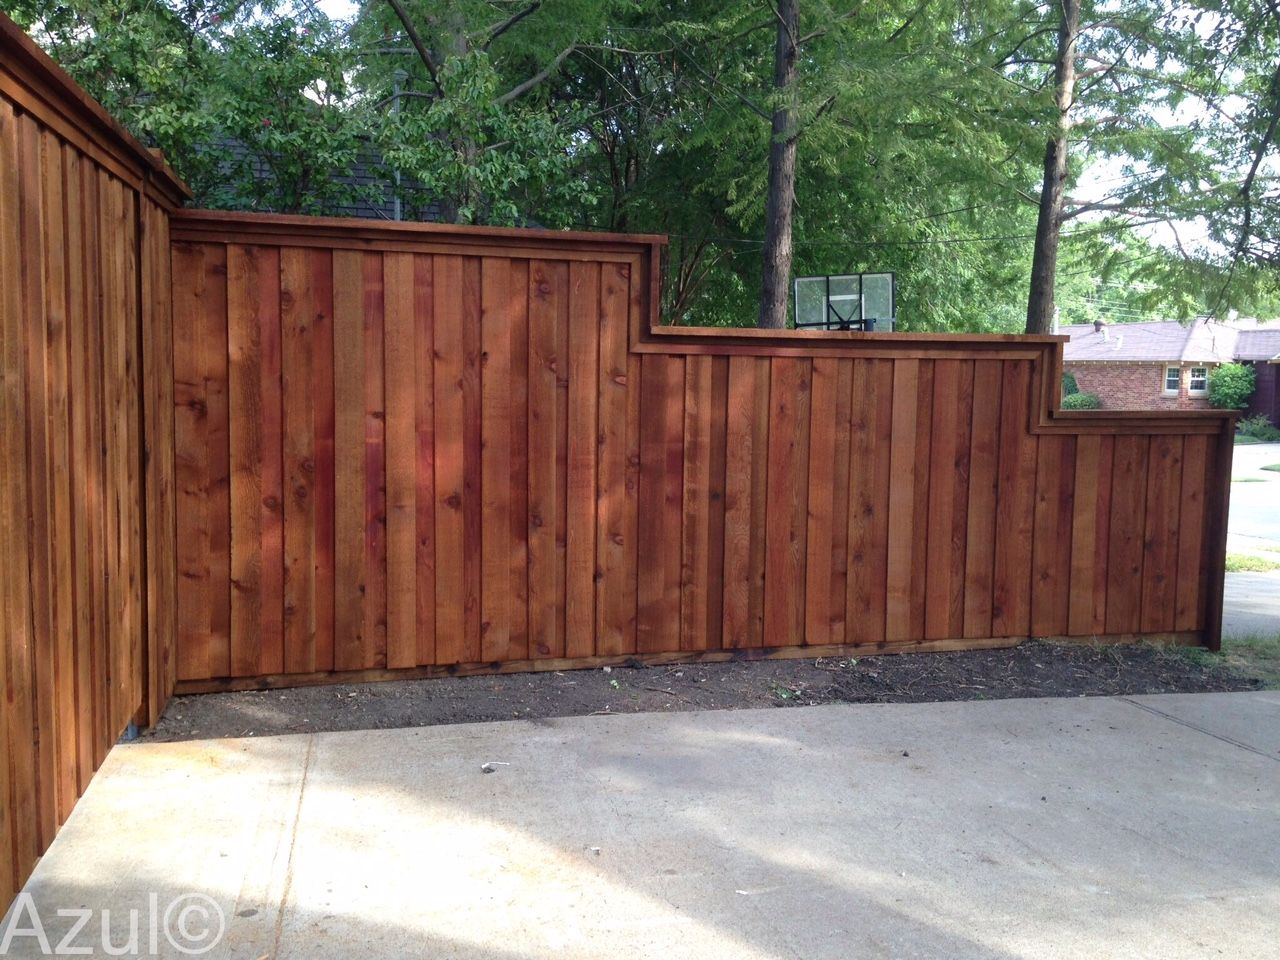 This Tiered Fence Puts The Fun In Functional Backyard Fences